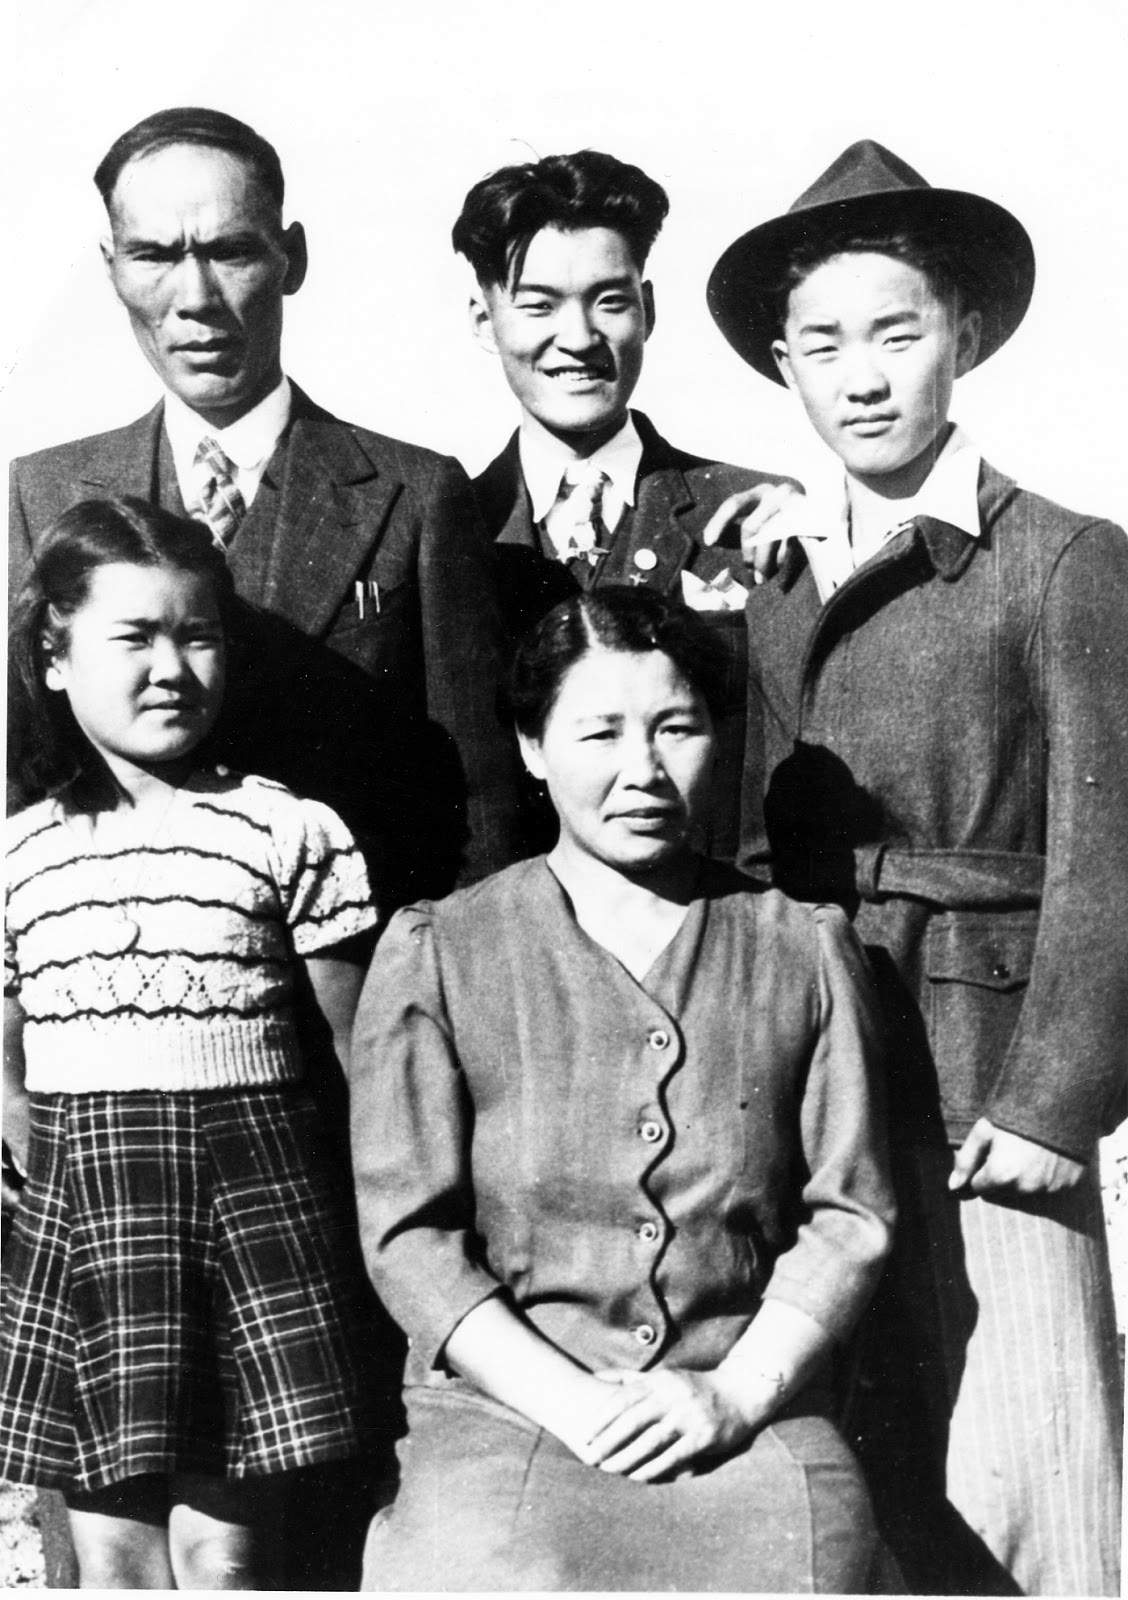 Takeyasu Family, 1943. Galt Archives 19790284003